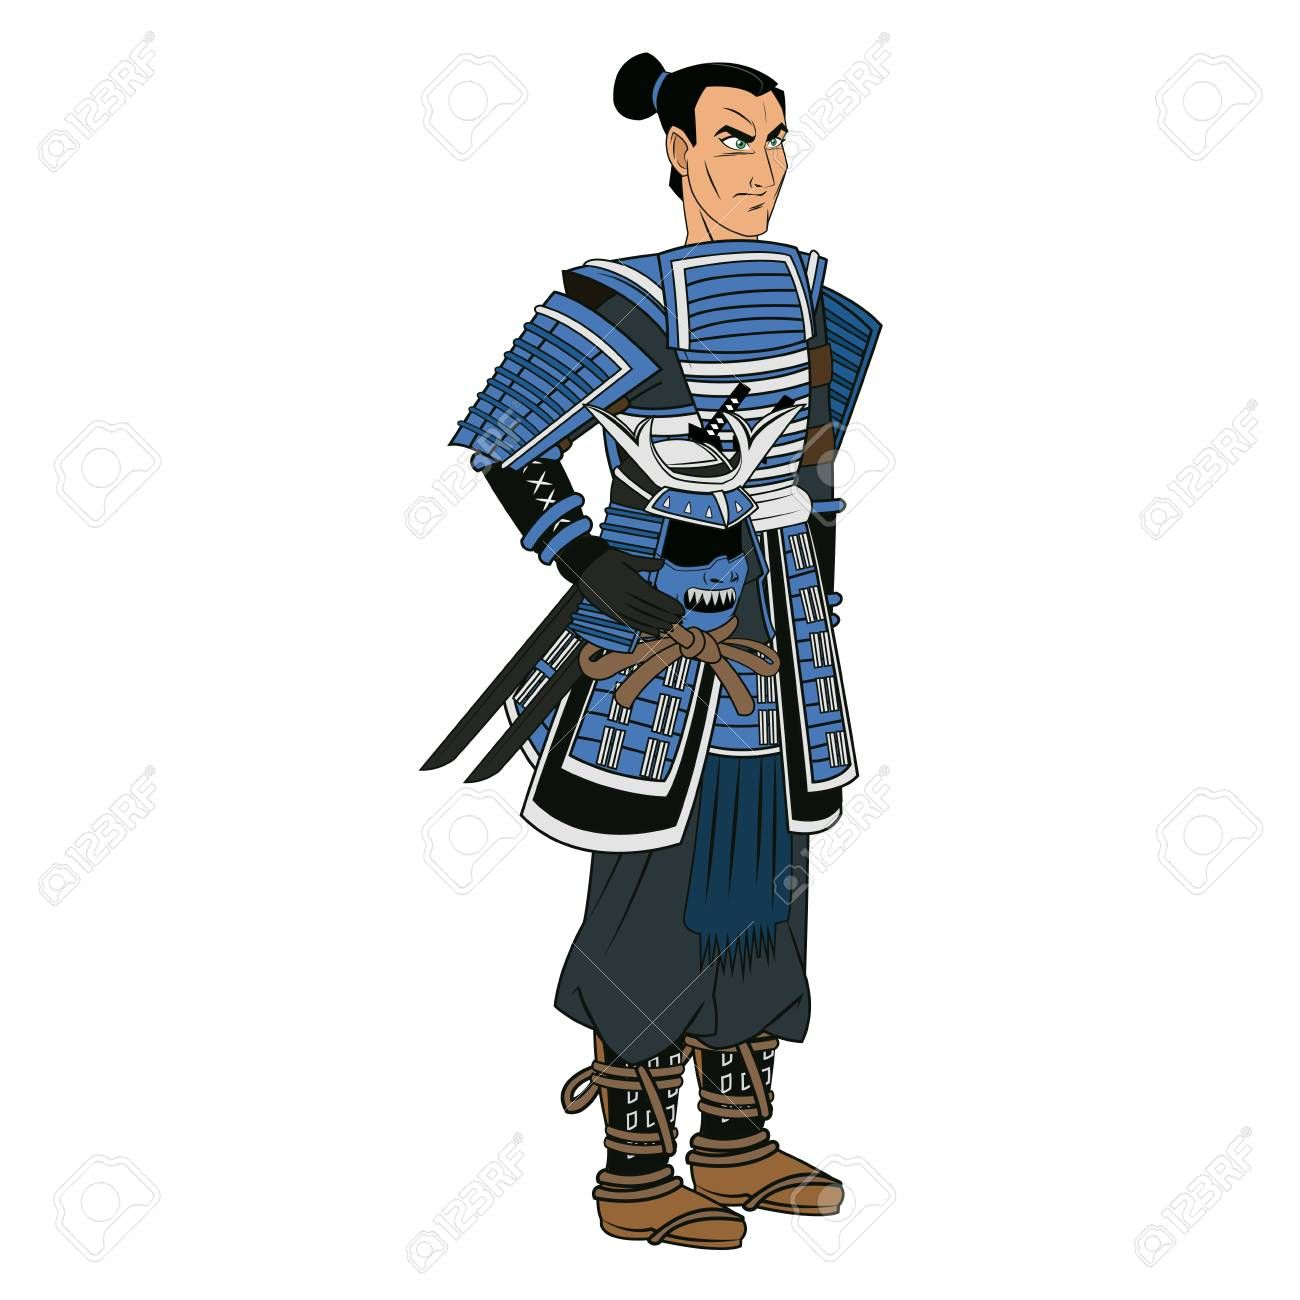 Samurai Clipart chinese soldier 1.